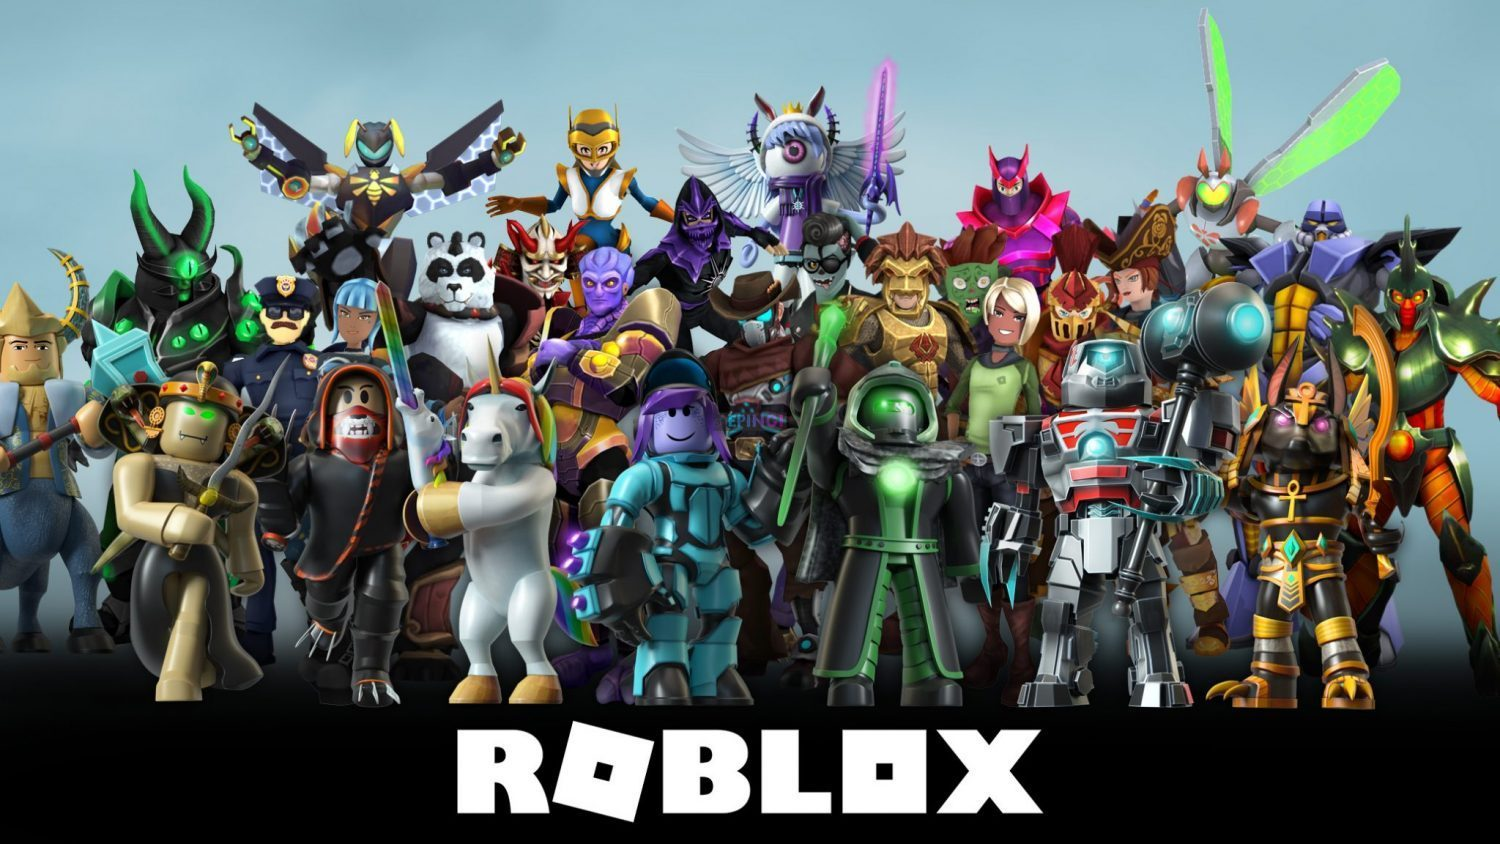 Roblox Ps4 Version Full Game Free Download Epingi